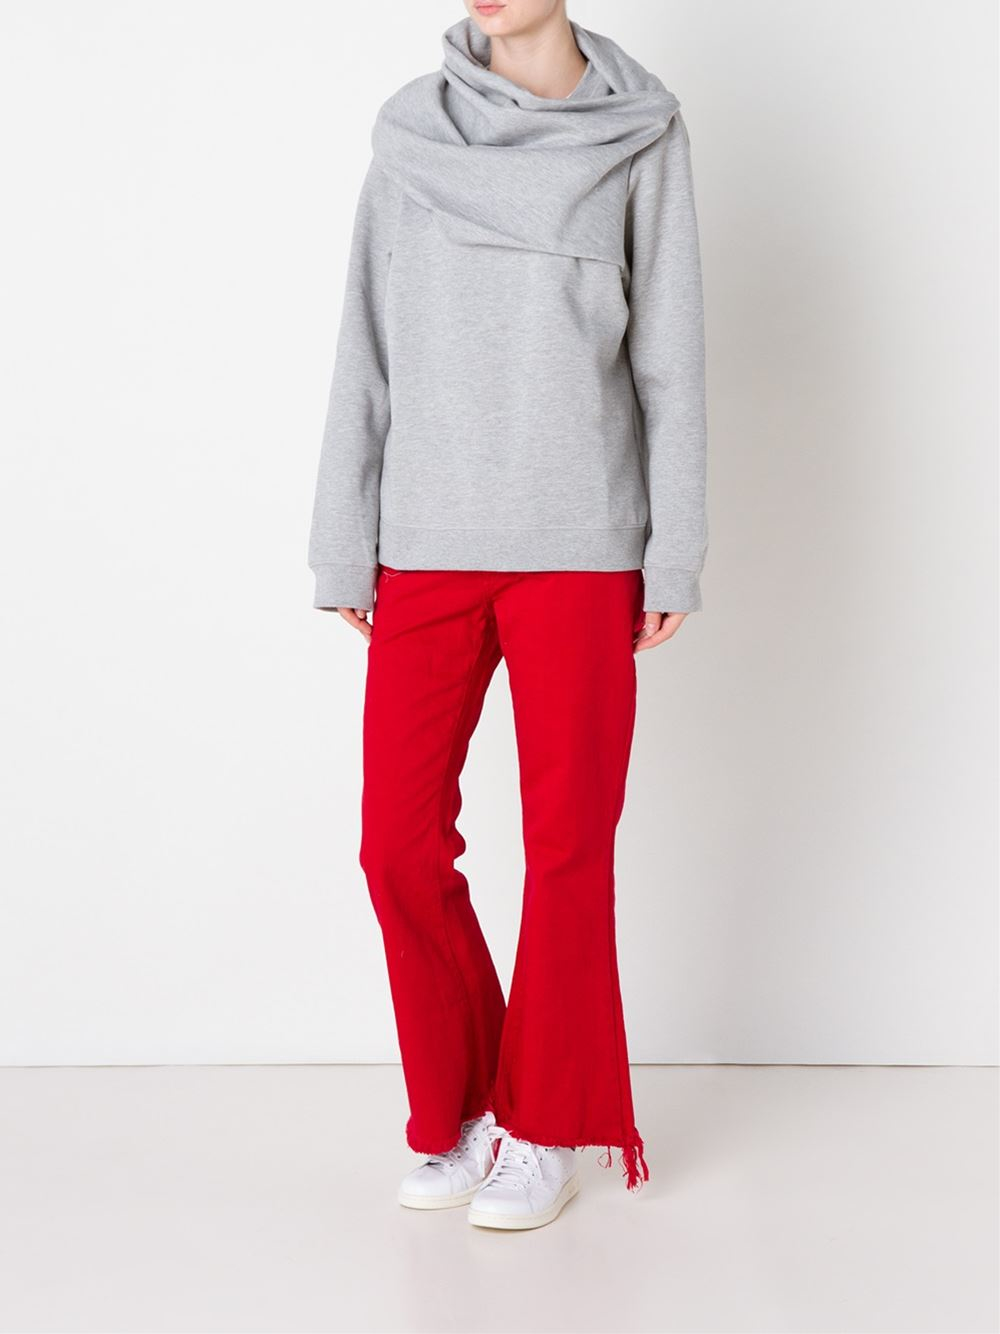 Marques'almeida Frayed Edge Flared Jeans in Red | Lyst